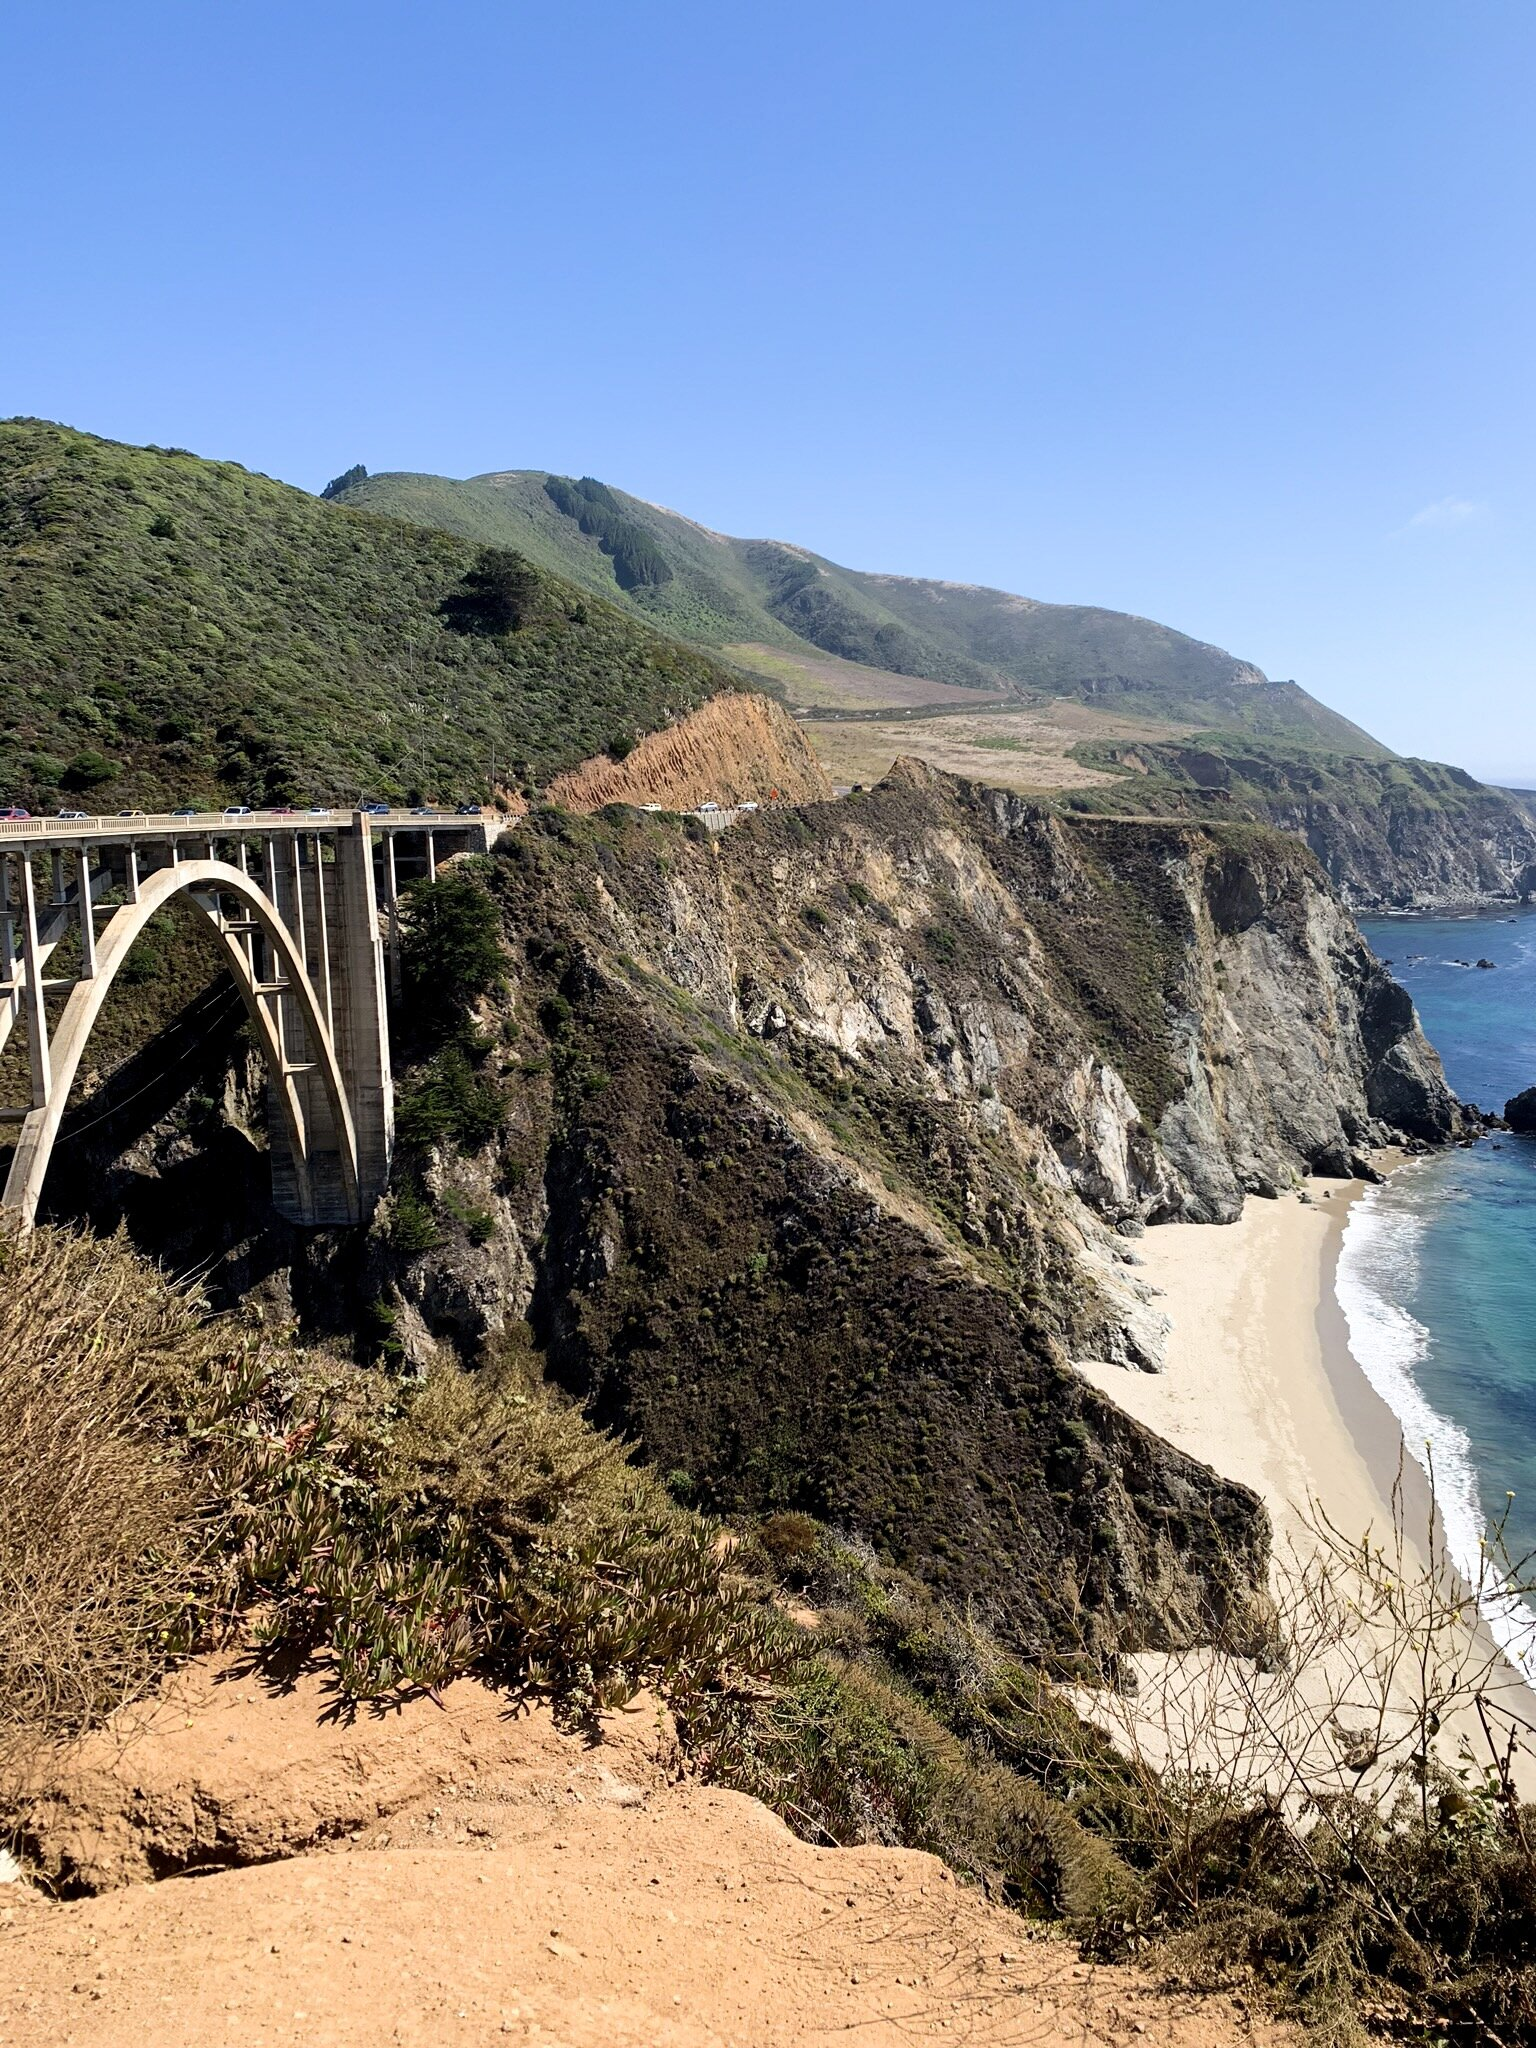 Bixby Bridge en route to Monterey, California after Big Sur